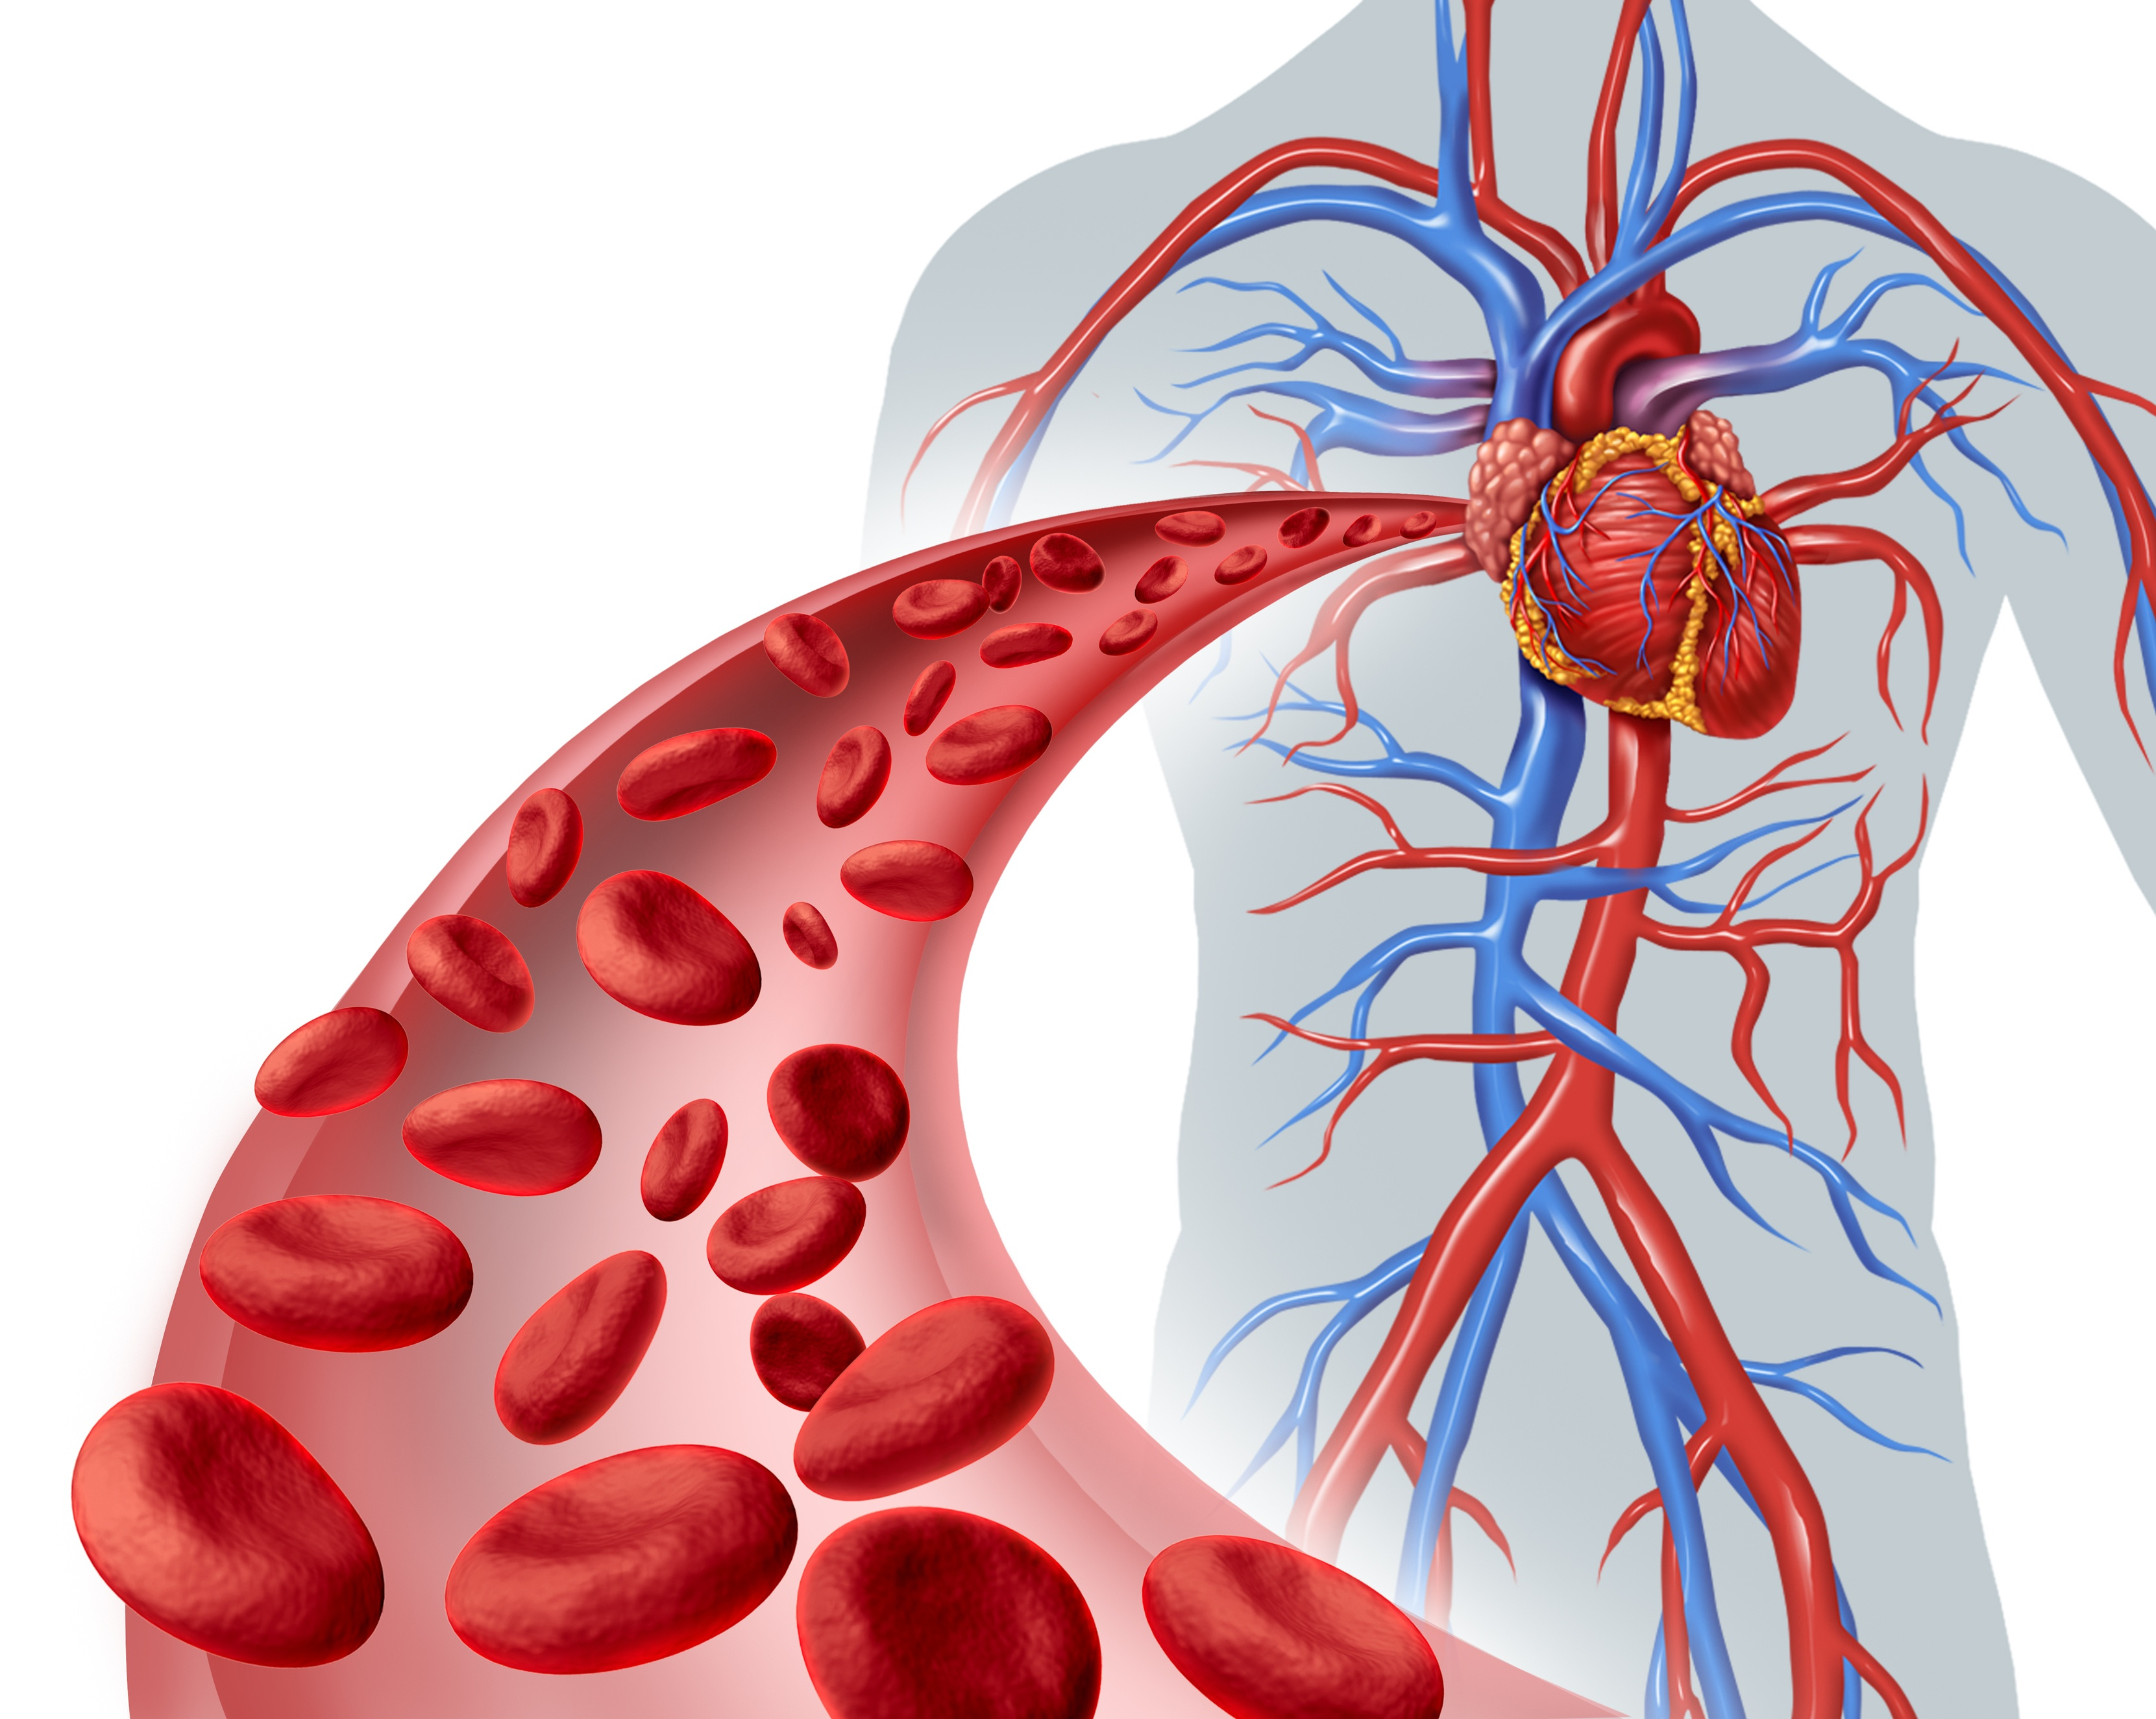 vascular-access-blood-flow